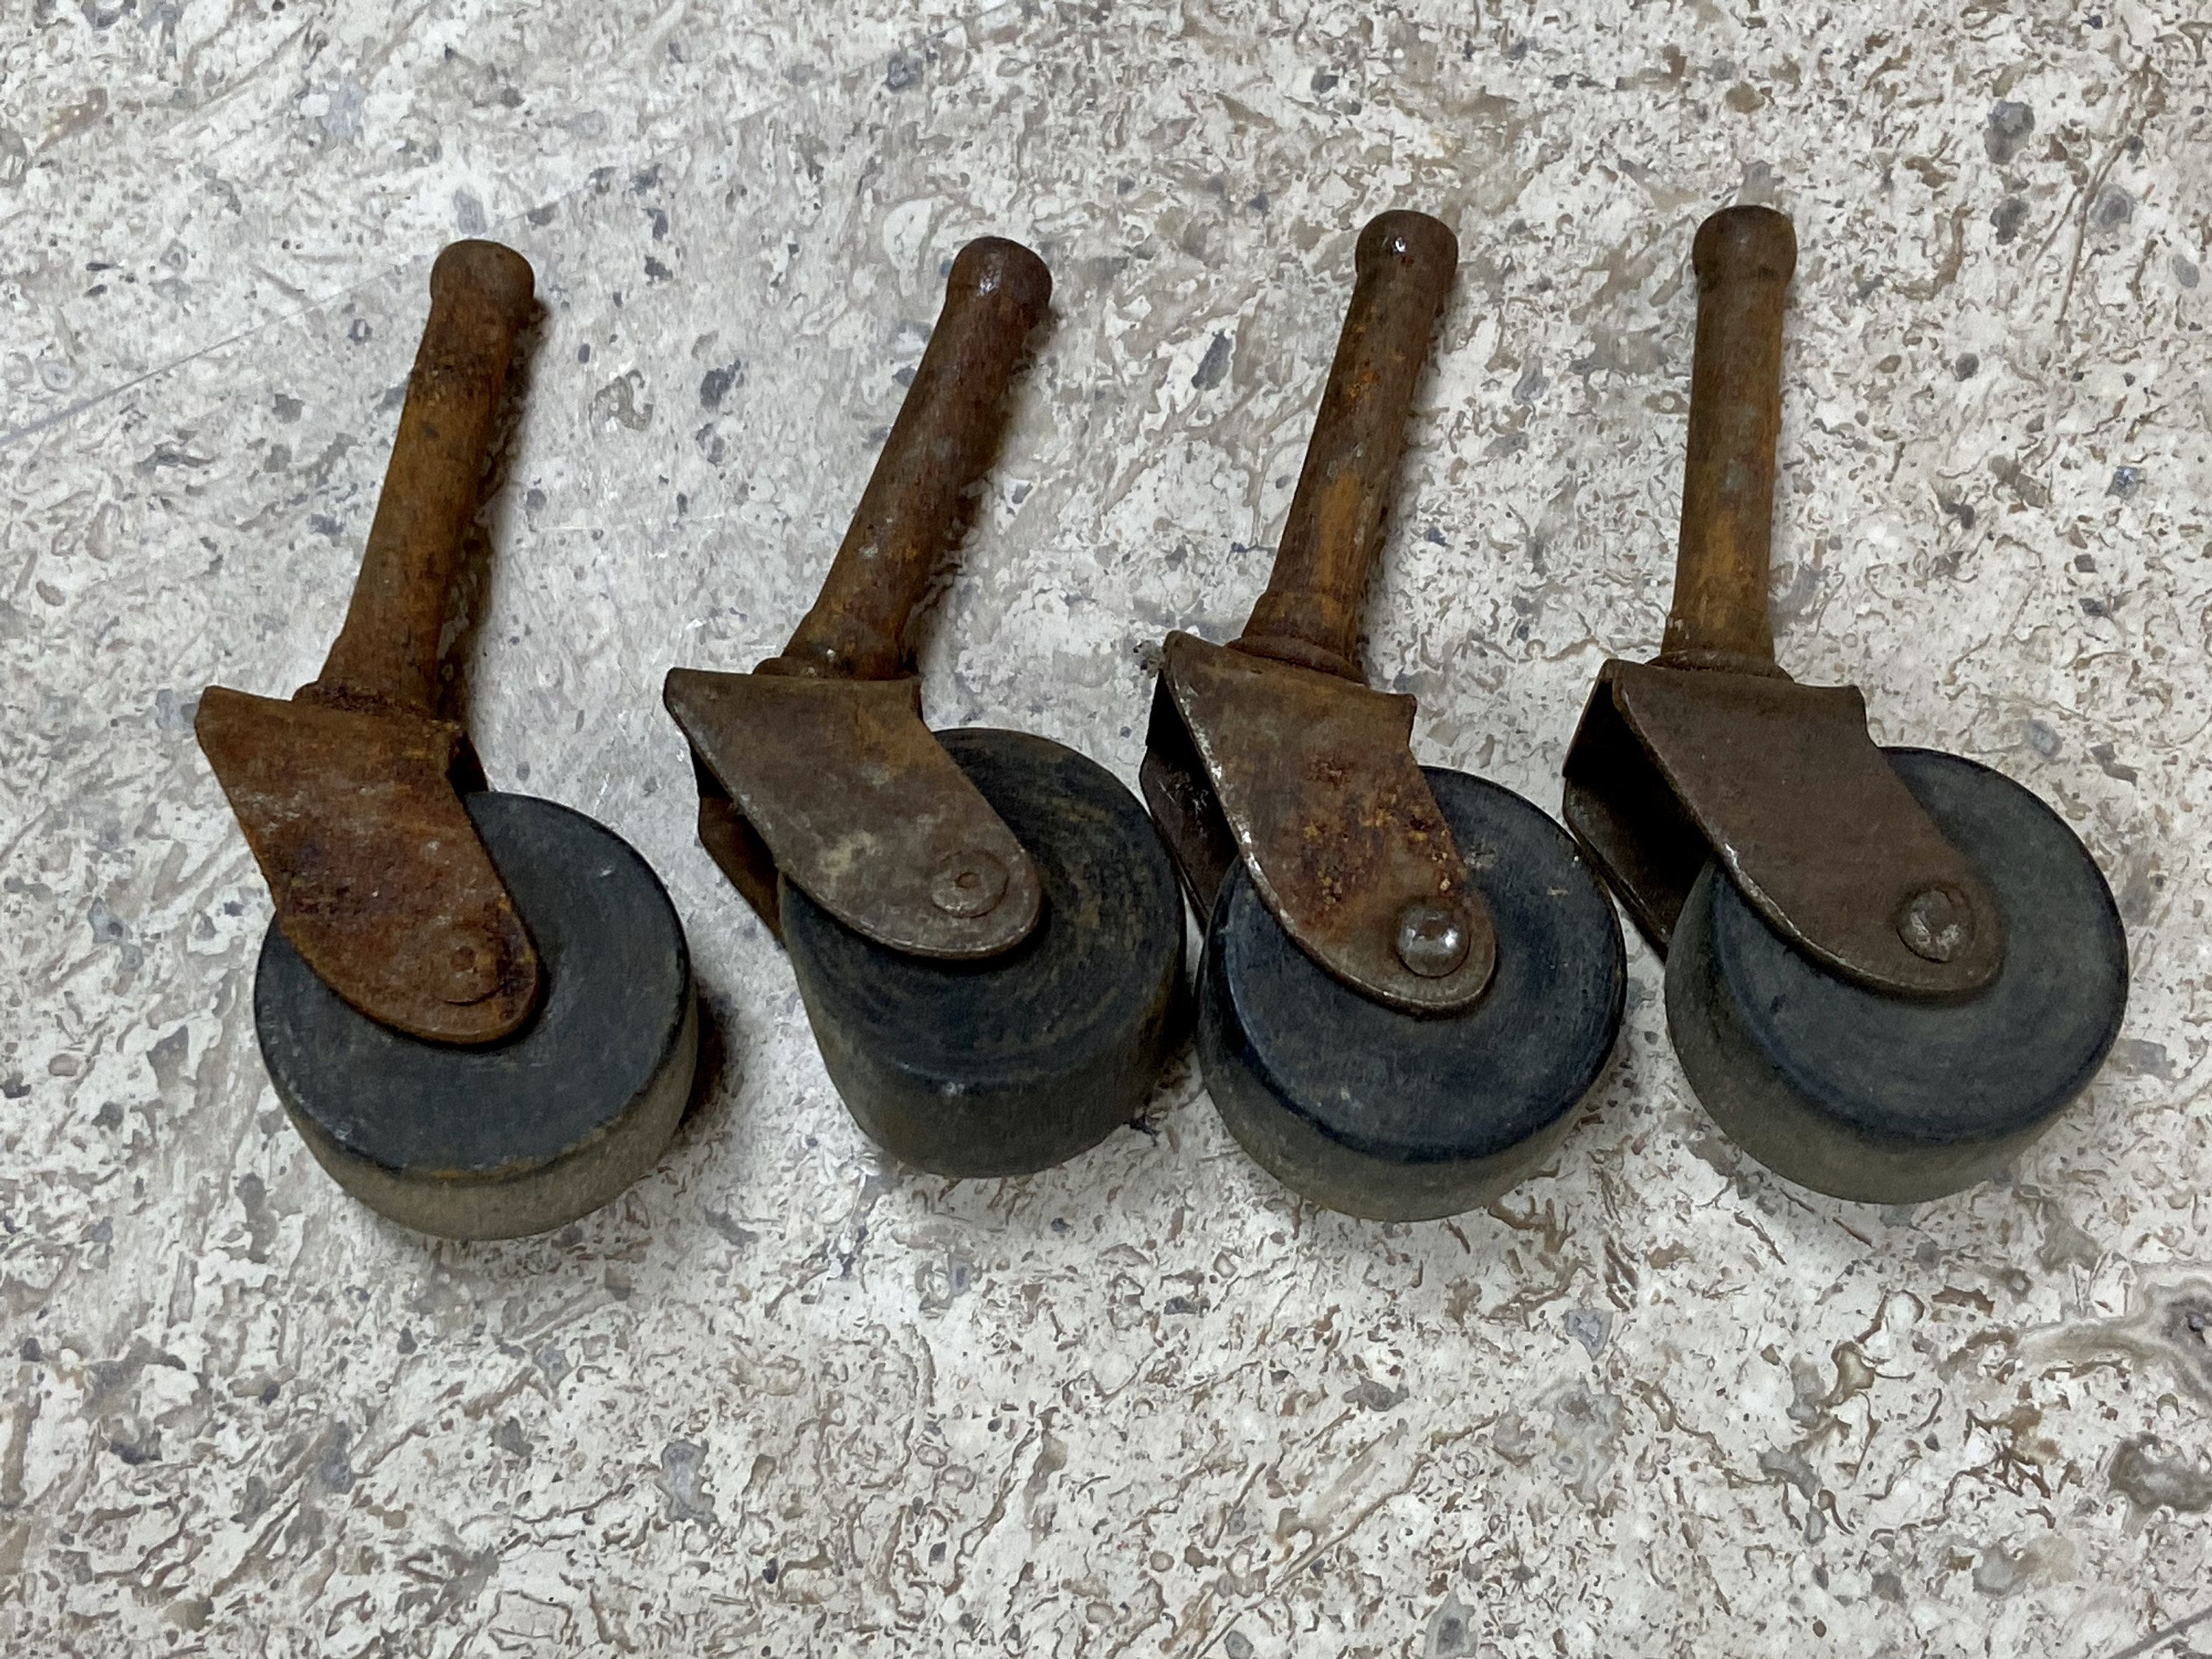 4 Iron And Wood Casters Iron And Wood Wheels Furniture Restoration Supply Antique Industrial Hardware Rustic Assemblage Supplies In 2020 Furniture Restoration Reclaimed Decor Industrial Hardware